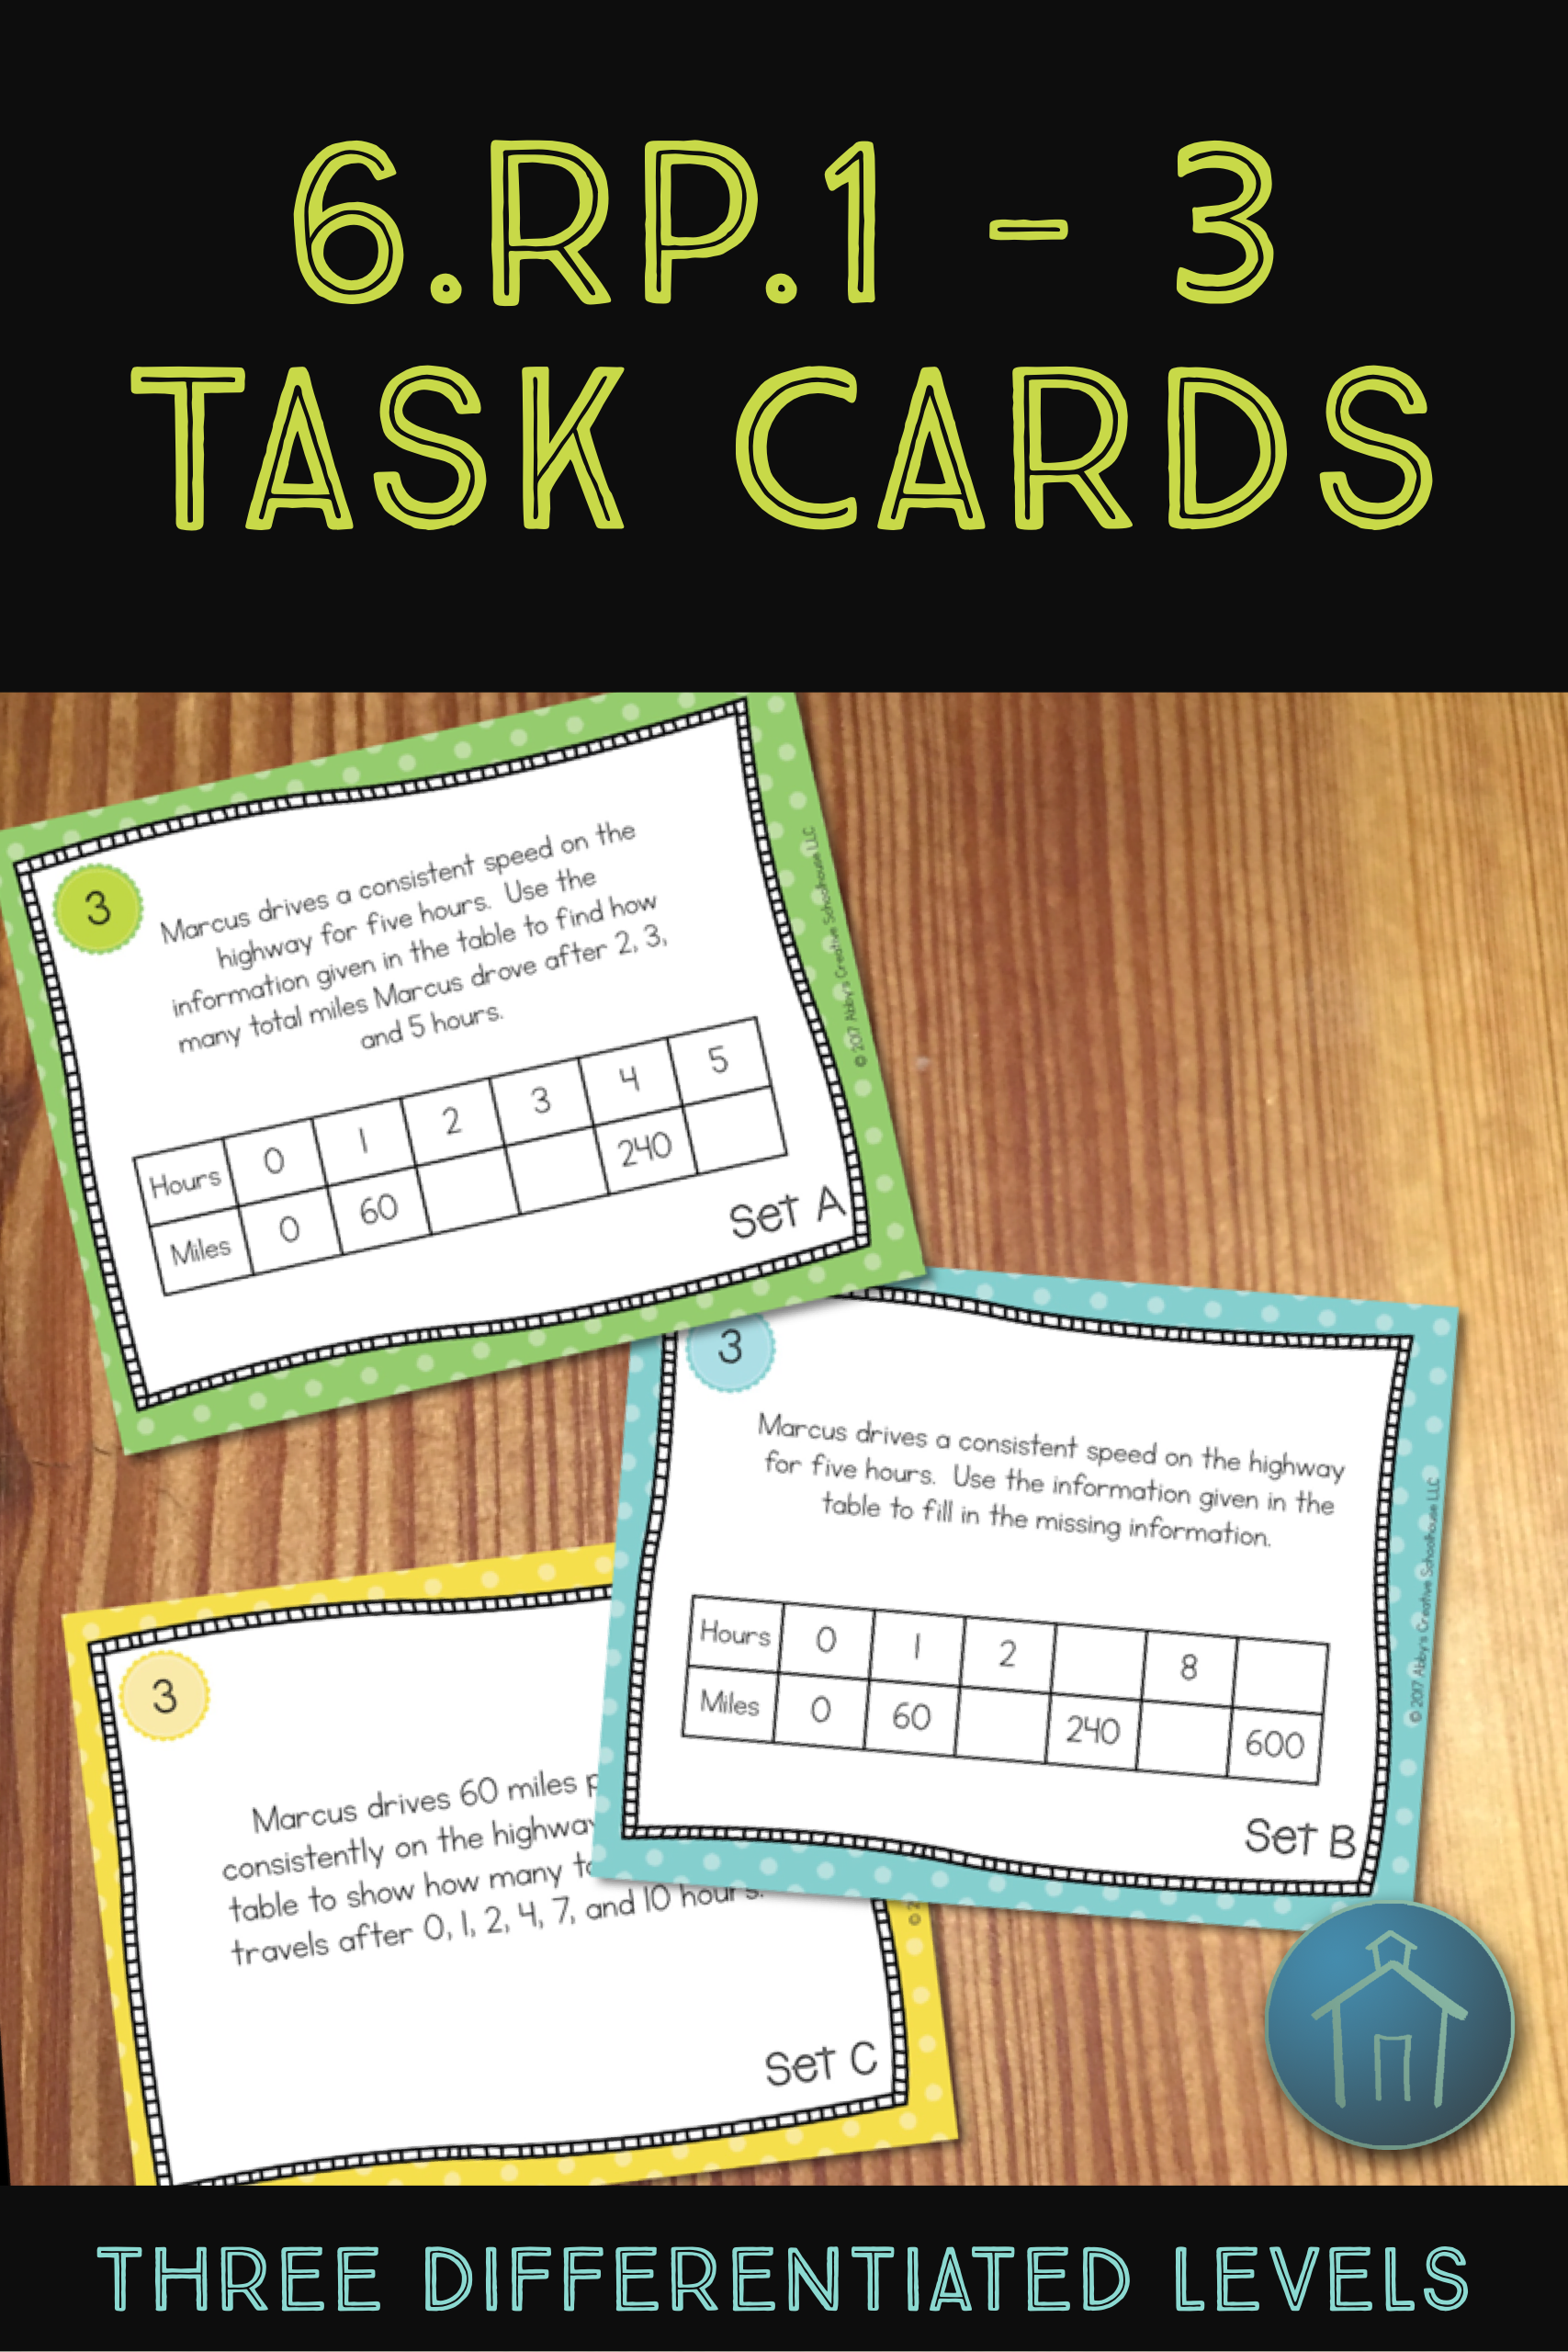 Rate And Ratio Task Cards 6 Rp 1 6 Rp 2 6 Rp 3